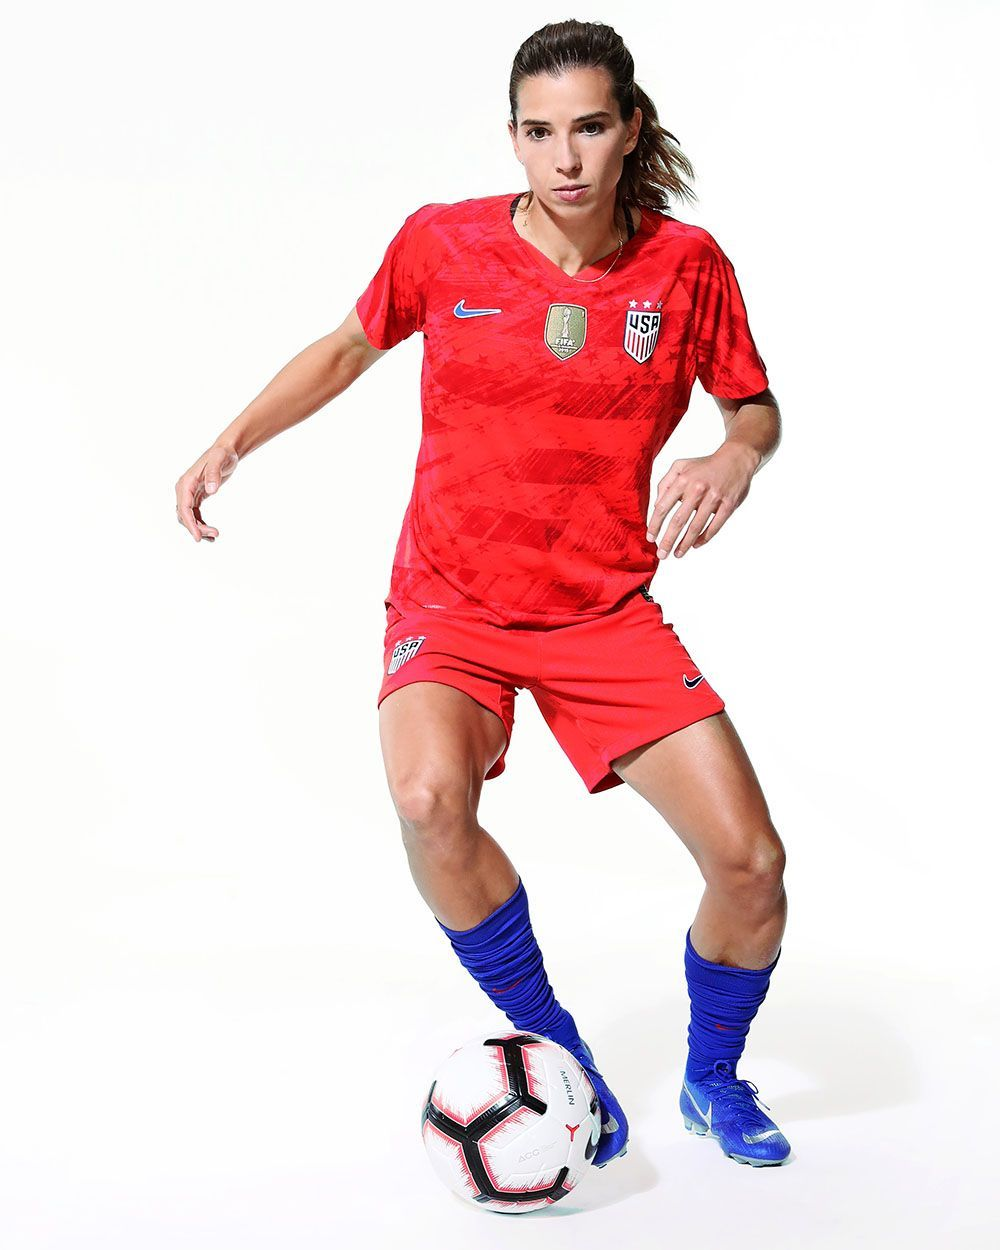 Don't blink... USWNT star Tobin Heath would nutmeg you in a hot second